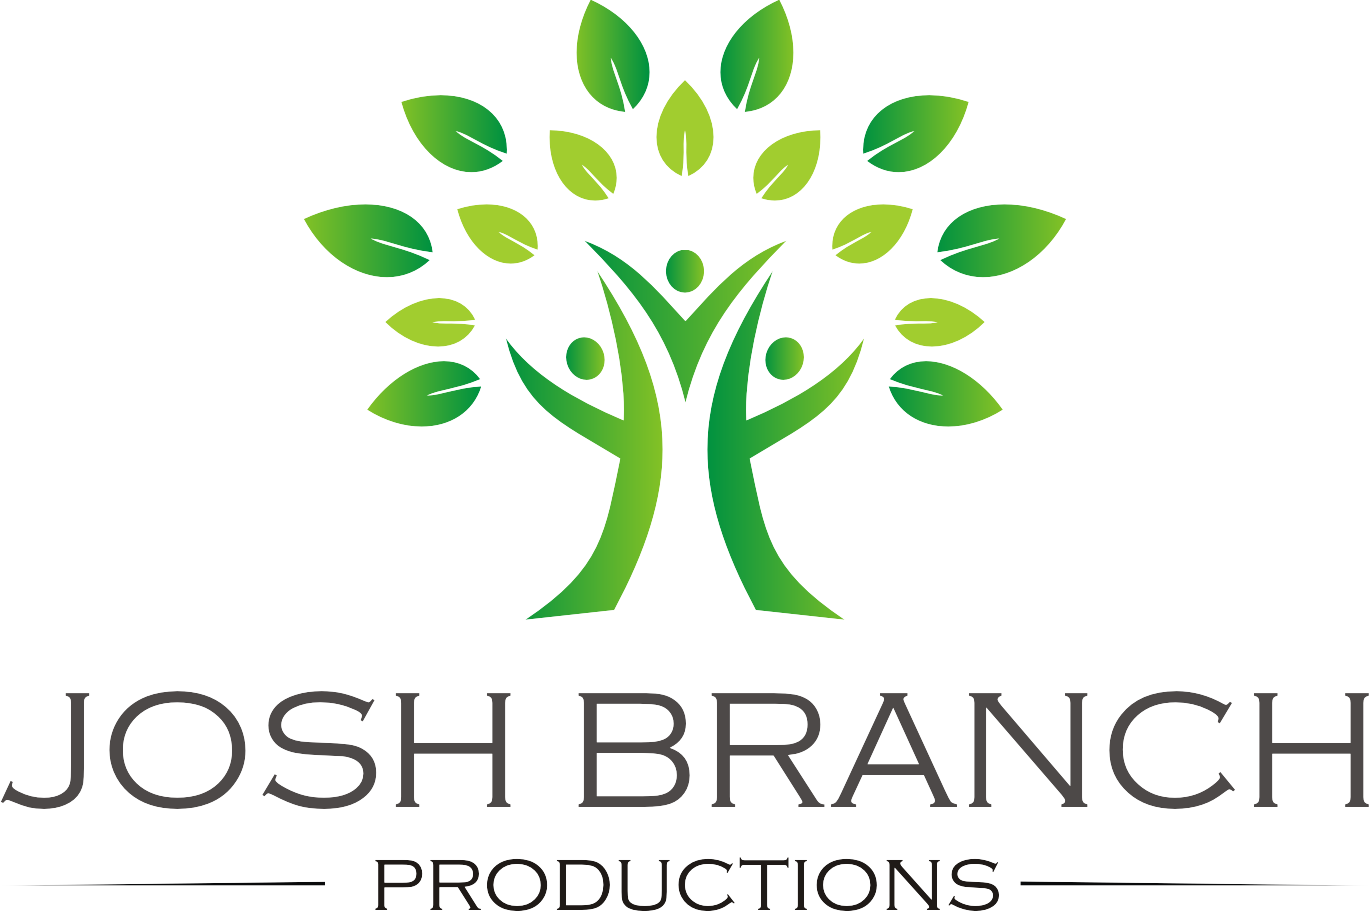 Josh Branch Productions